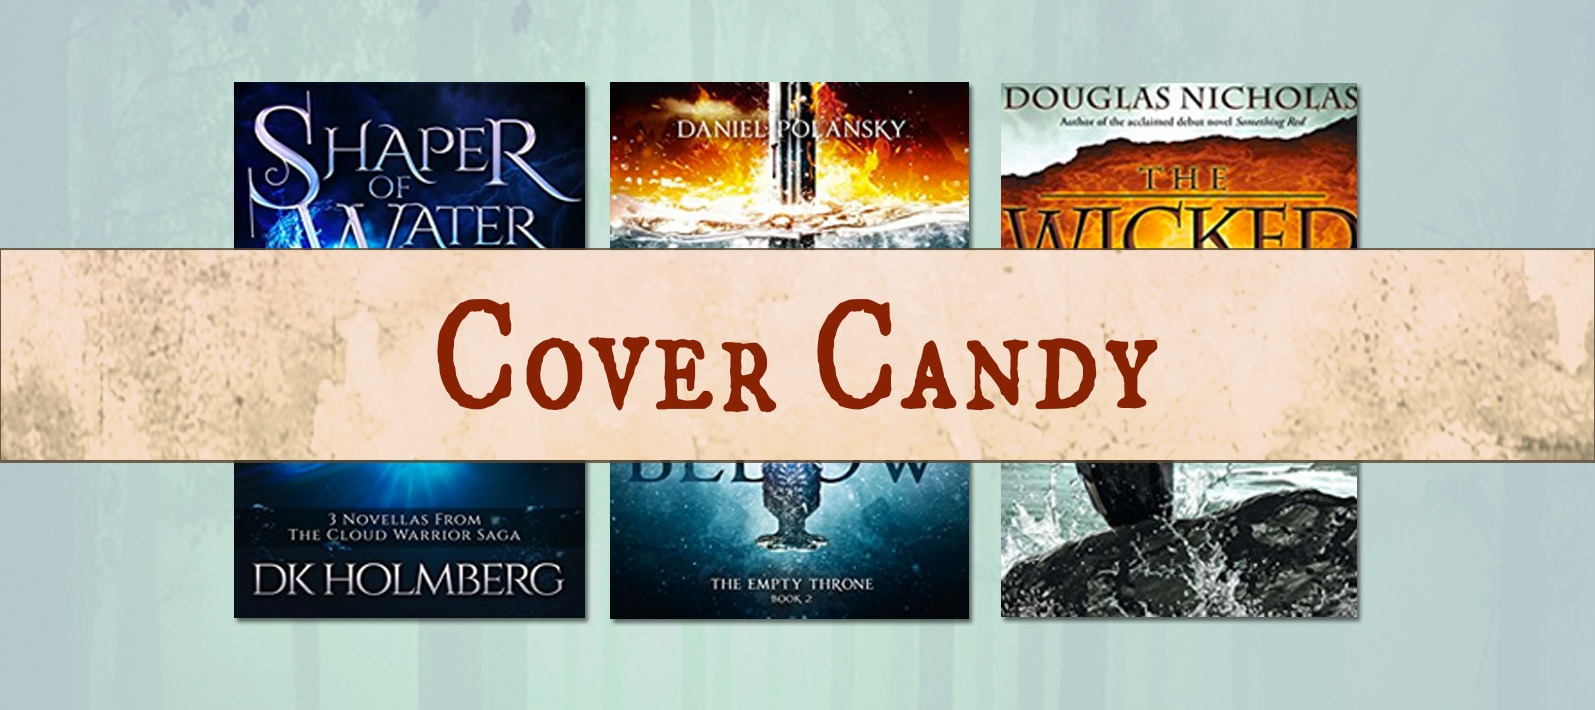 Cover Candy #11 (All Wet) brings us books with water on the cover. We've done fire, so it's only fair, right? There's nothing wishy-washy about these beauties, though! www.robinlythgoe.com